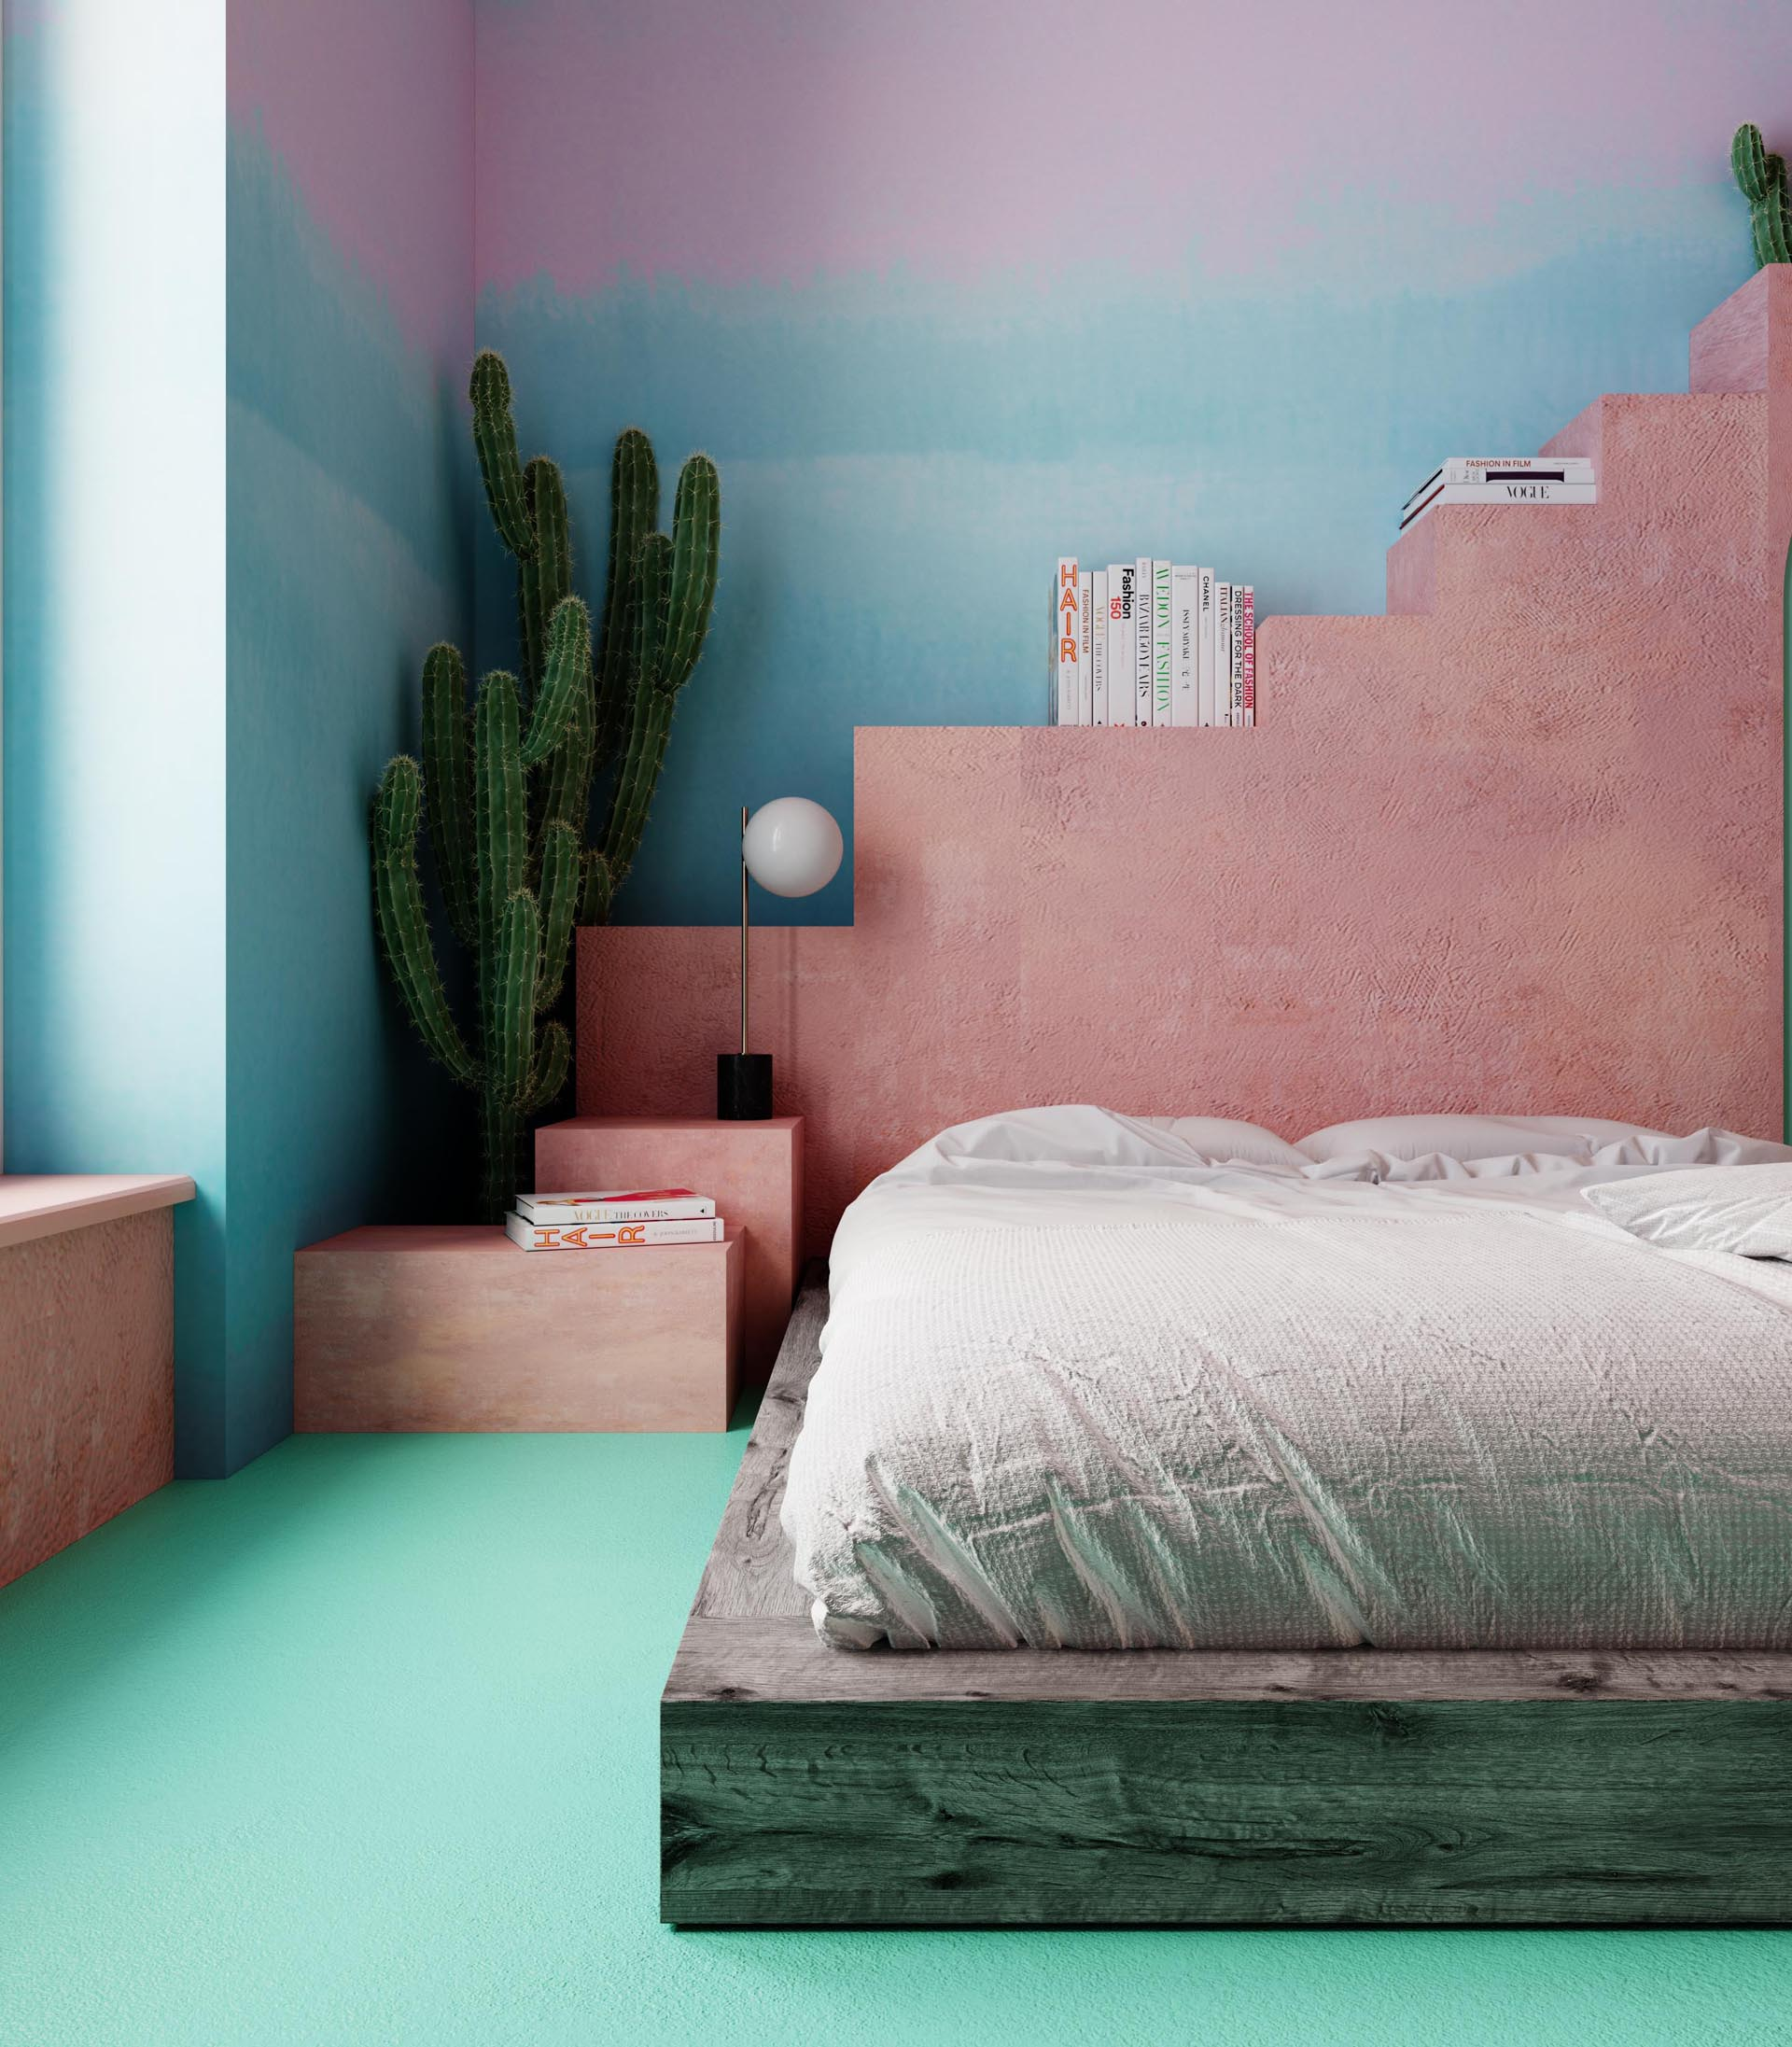 In this bedroom, the bed frame is made from old timber, while a shelving unit that resembles steps, was constructed using building blocks covered with plaster, imitating the plaster which can be found in Mexico.